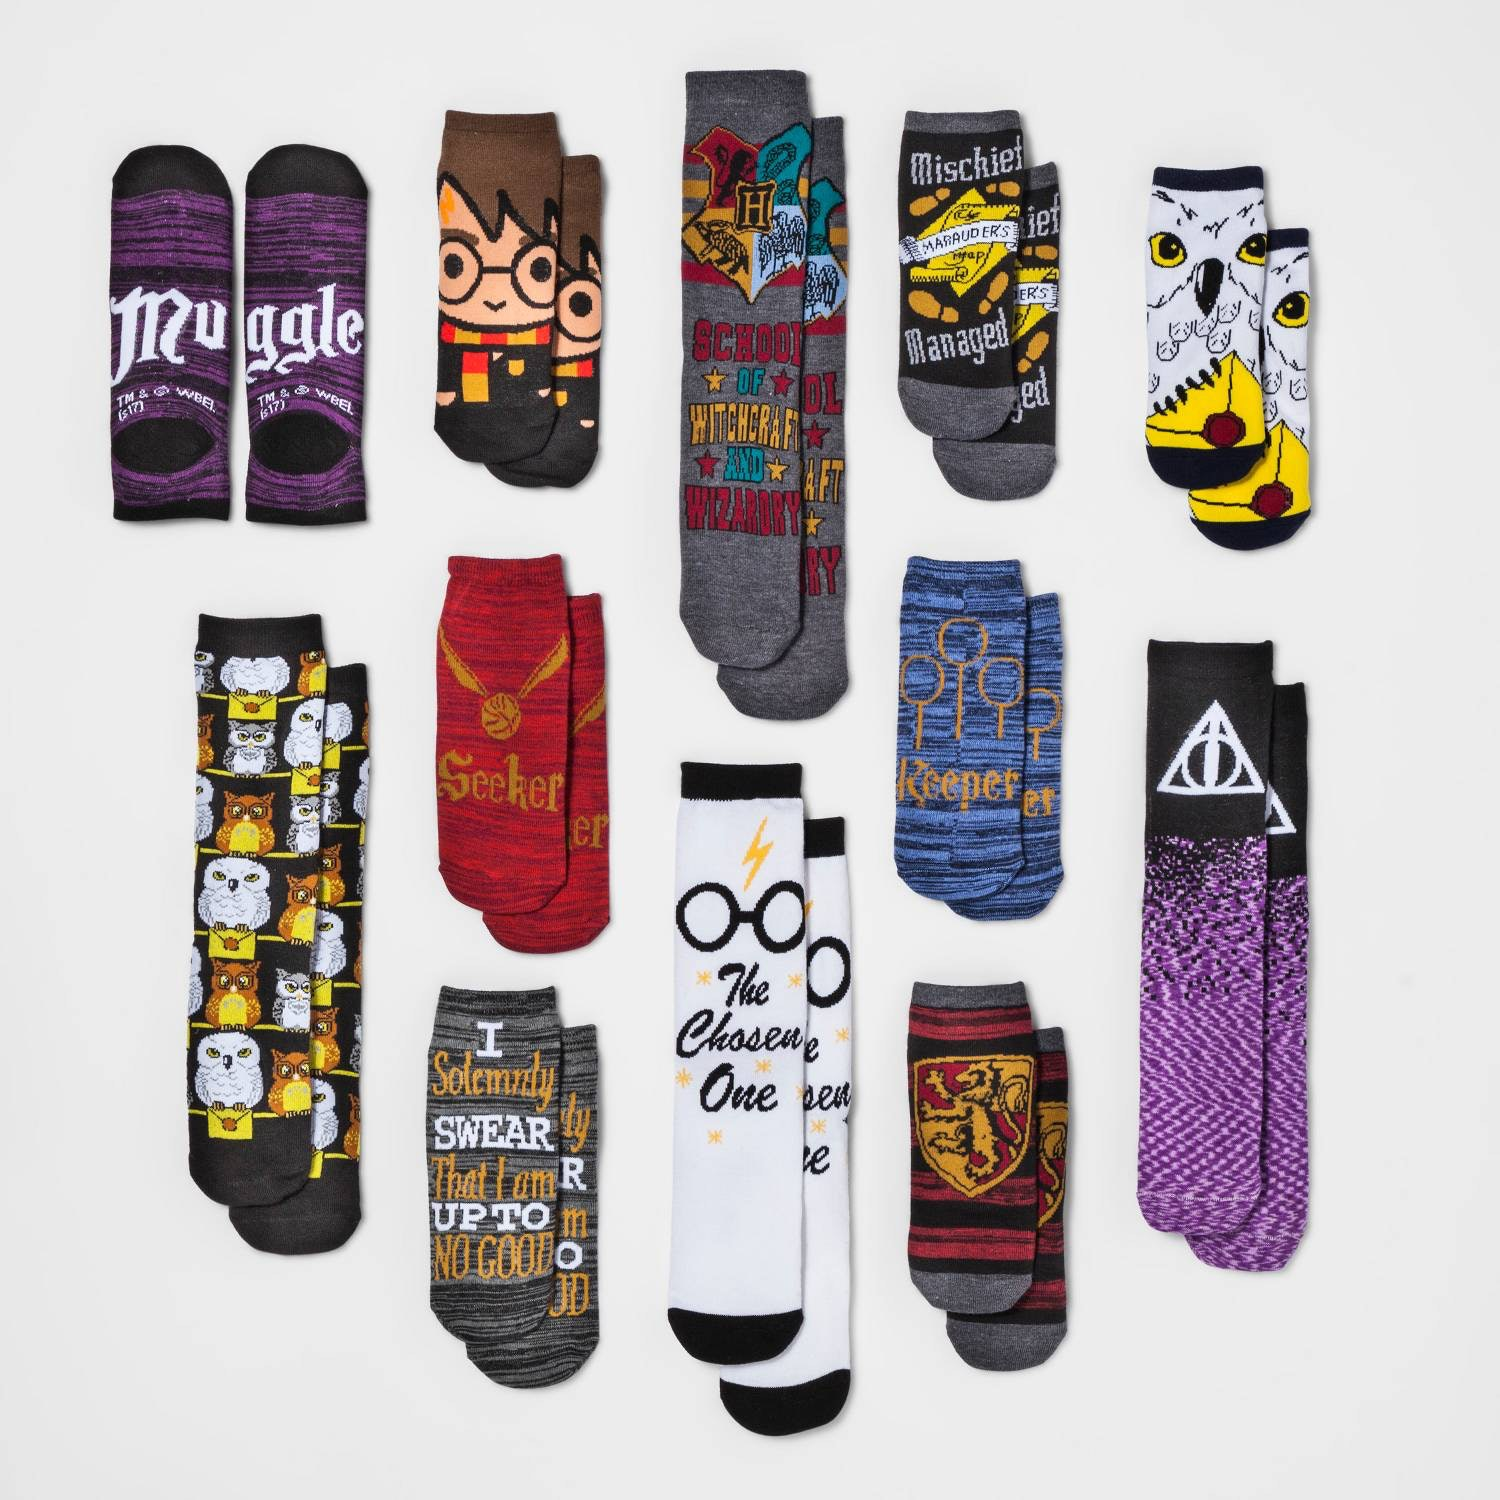 12 Days Of Christmas Socks.This Harry Potter Advent Calendar Includes 12 Pairs Of Socks